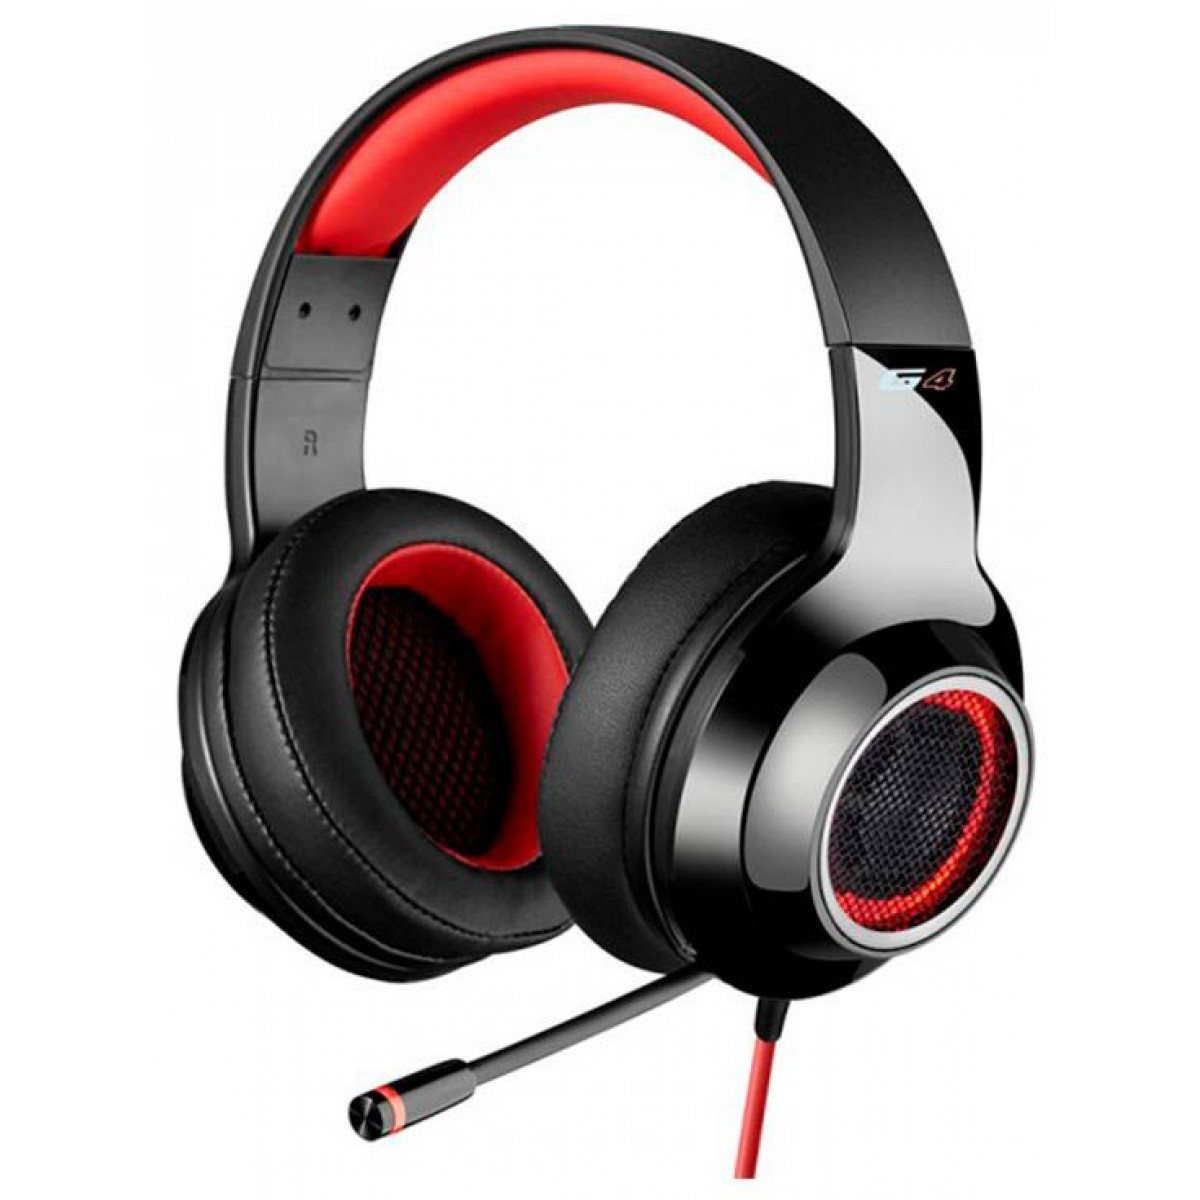 Headset Gamer Edifier G4, 7.1 USB, Black-Red